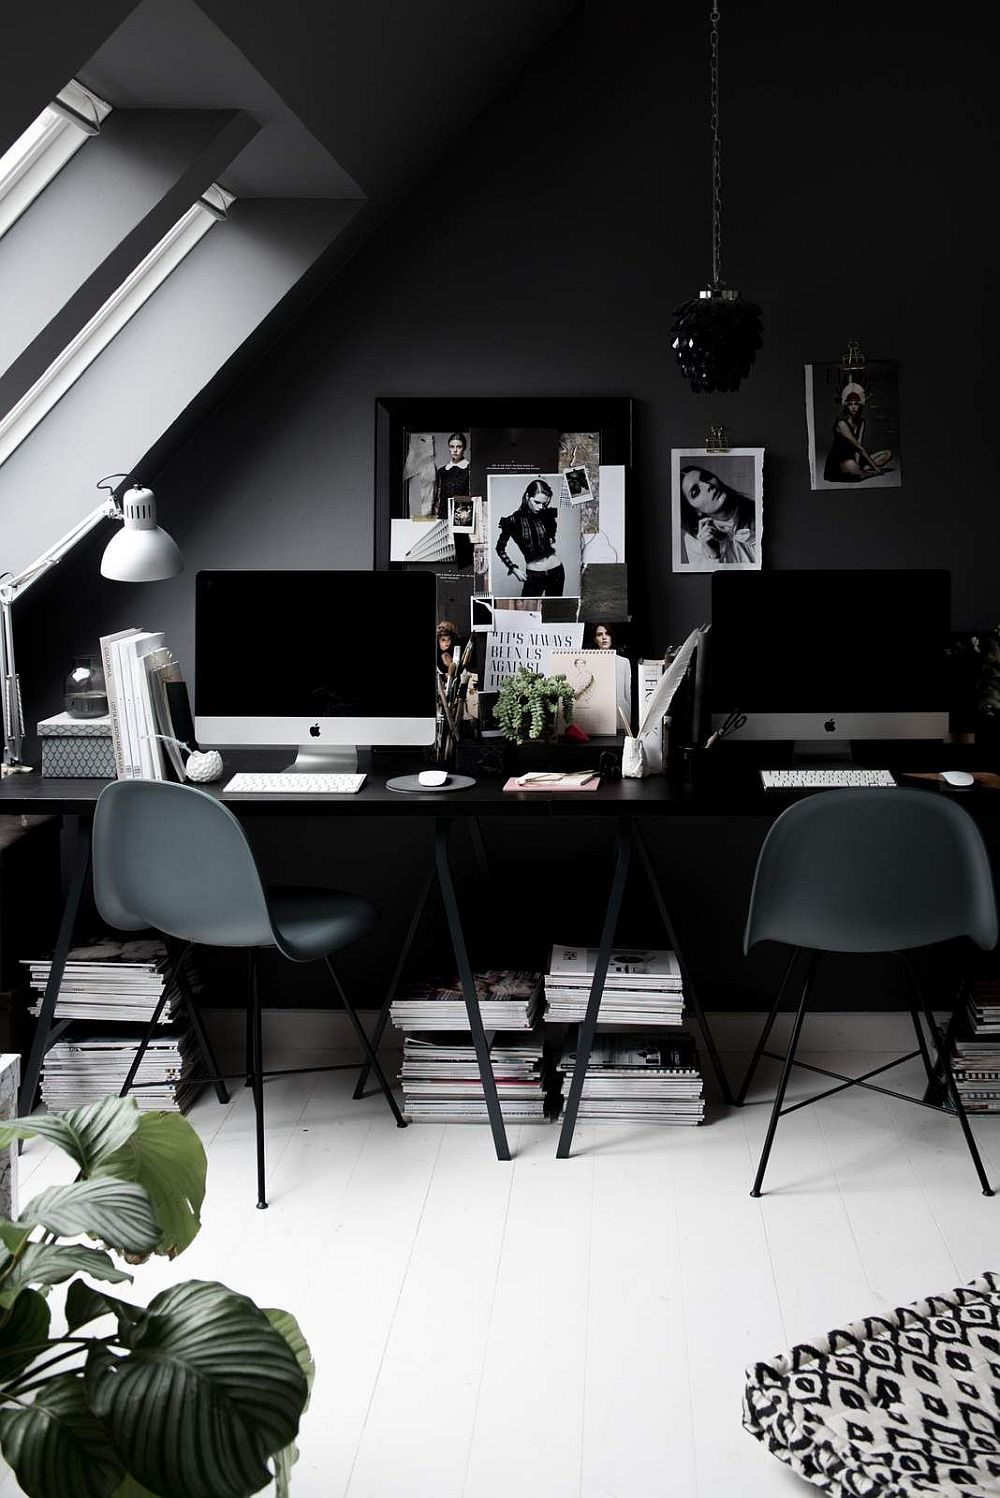 Exquisite-modern-Scandinavian-home-office-in-dark-gray-and-black-is-a-showstopper-97595